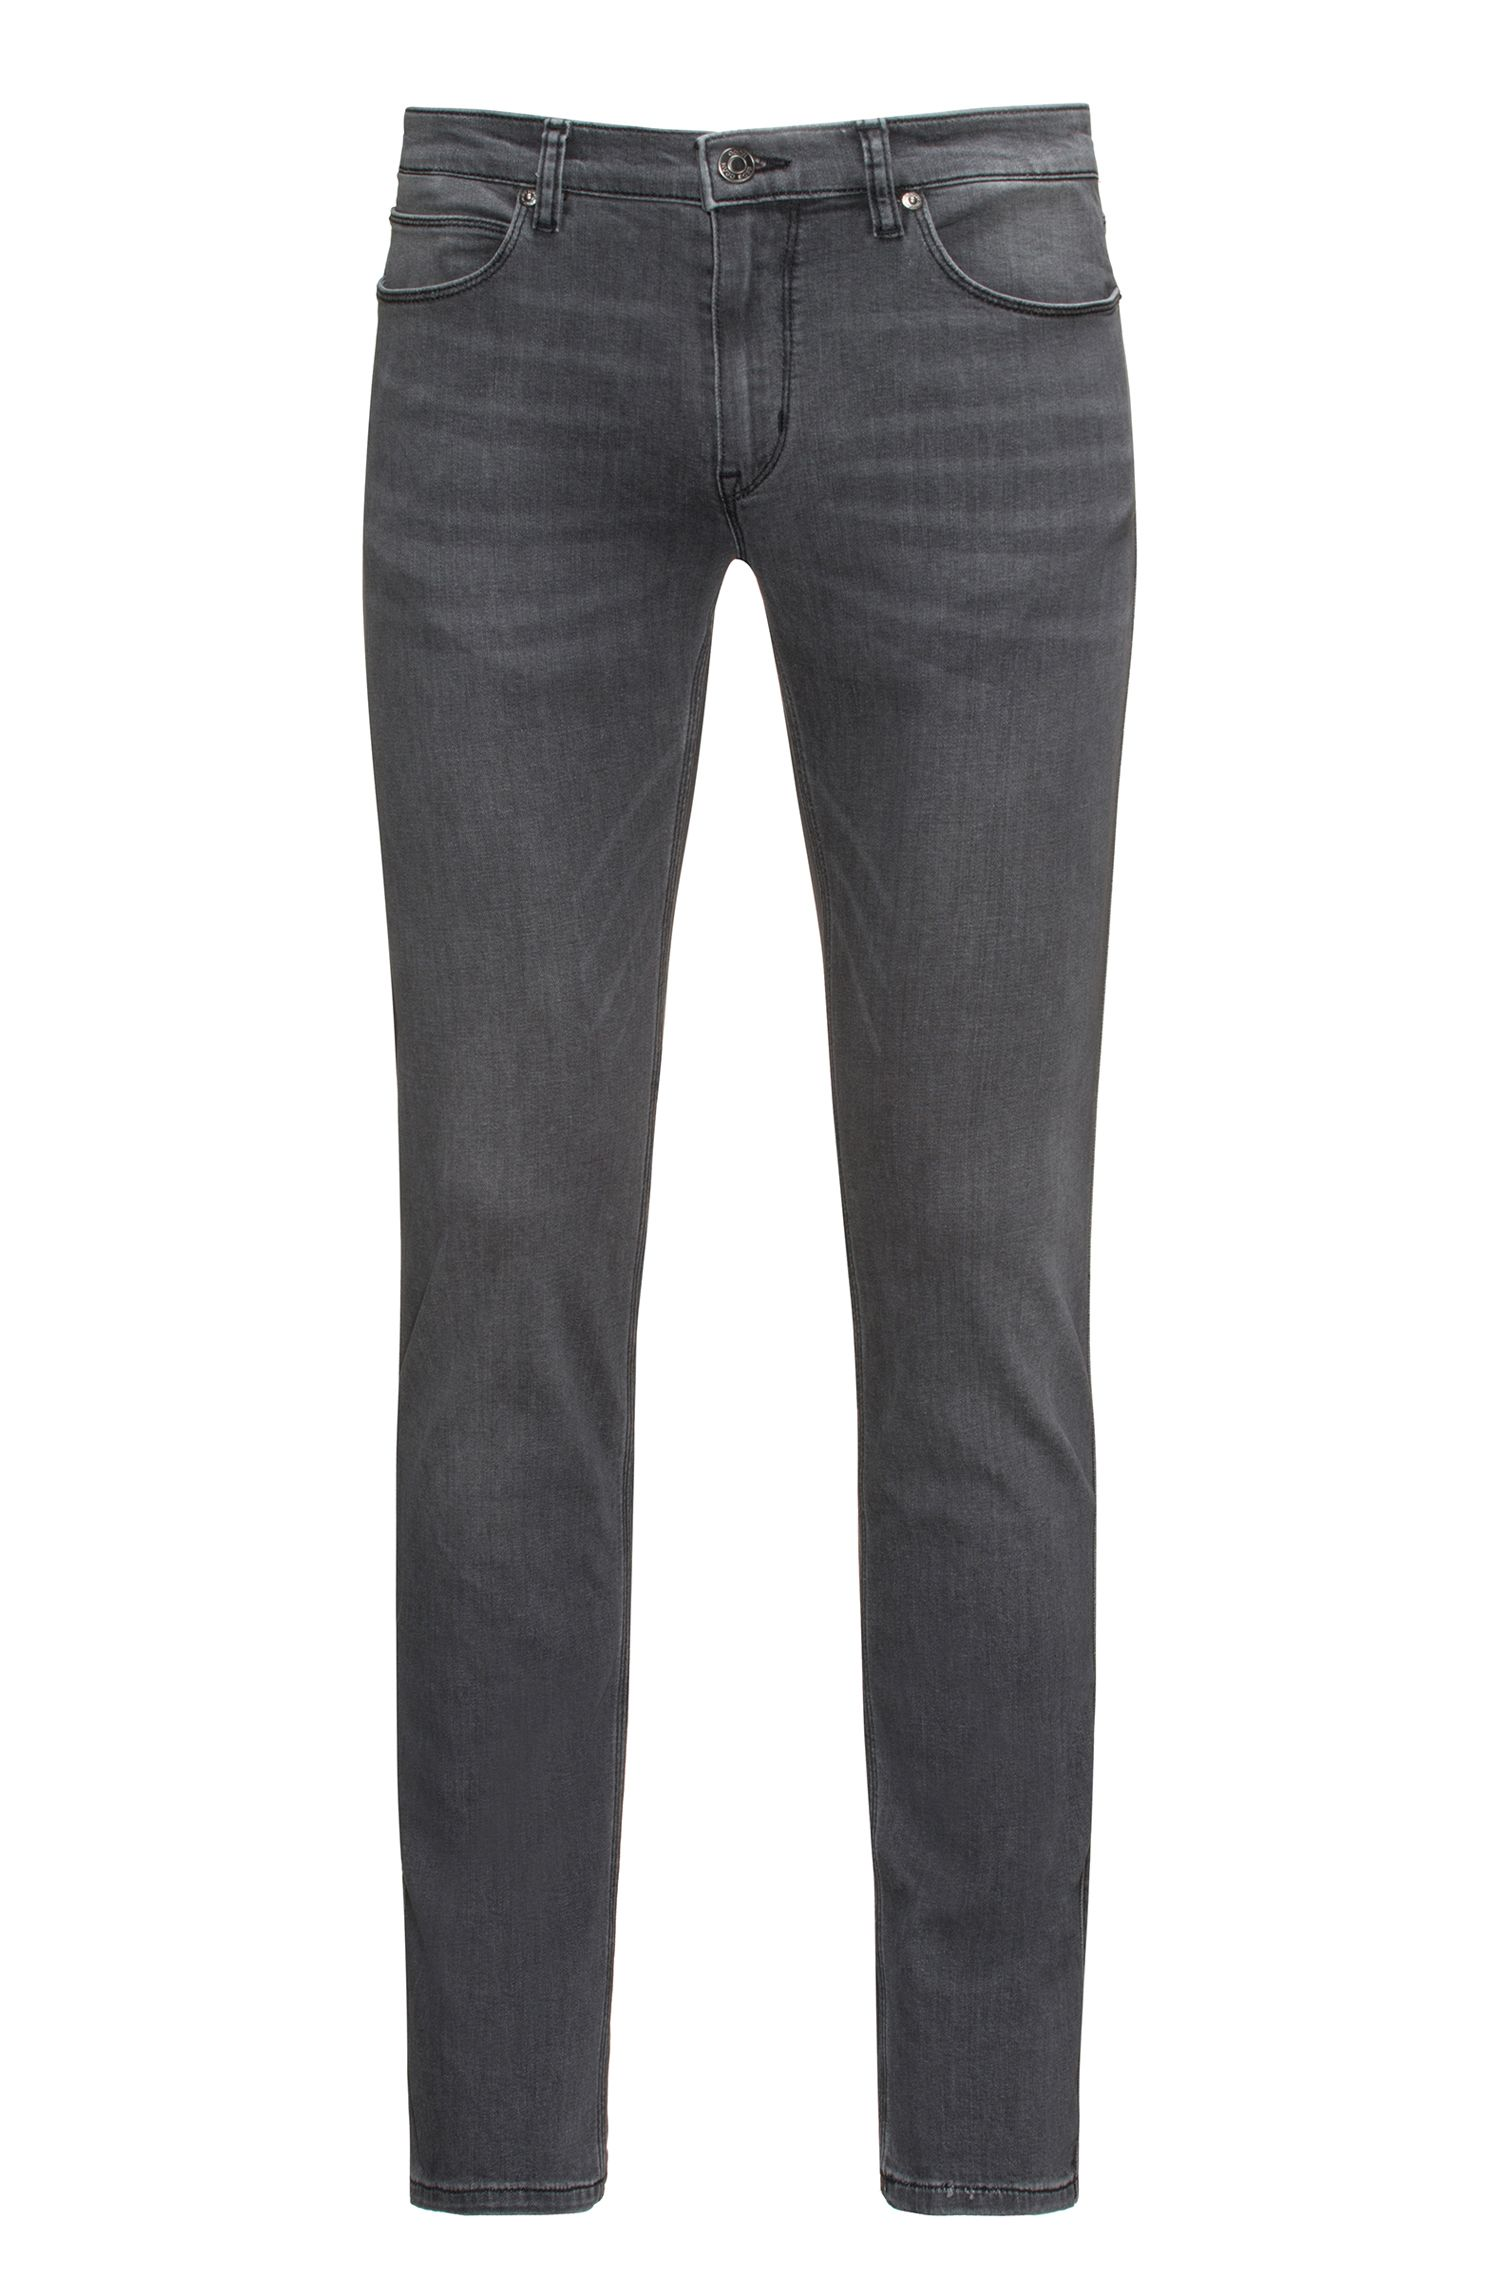 Slim-fit jeans in grey stone-washed comfort-stretch denim